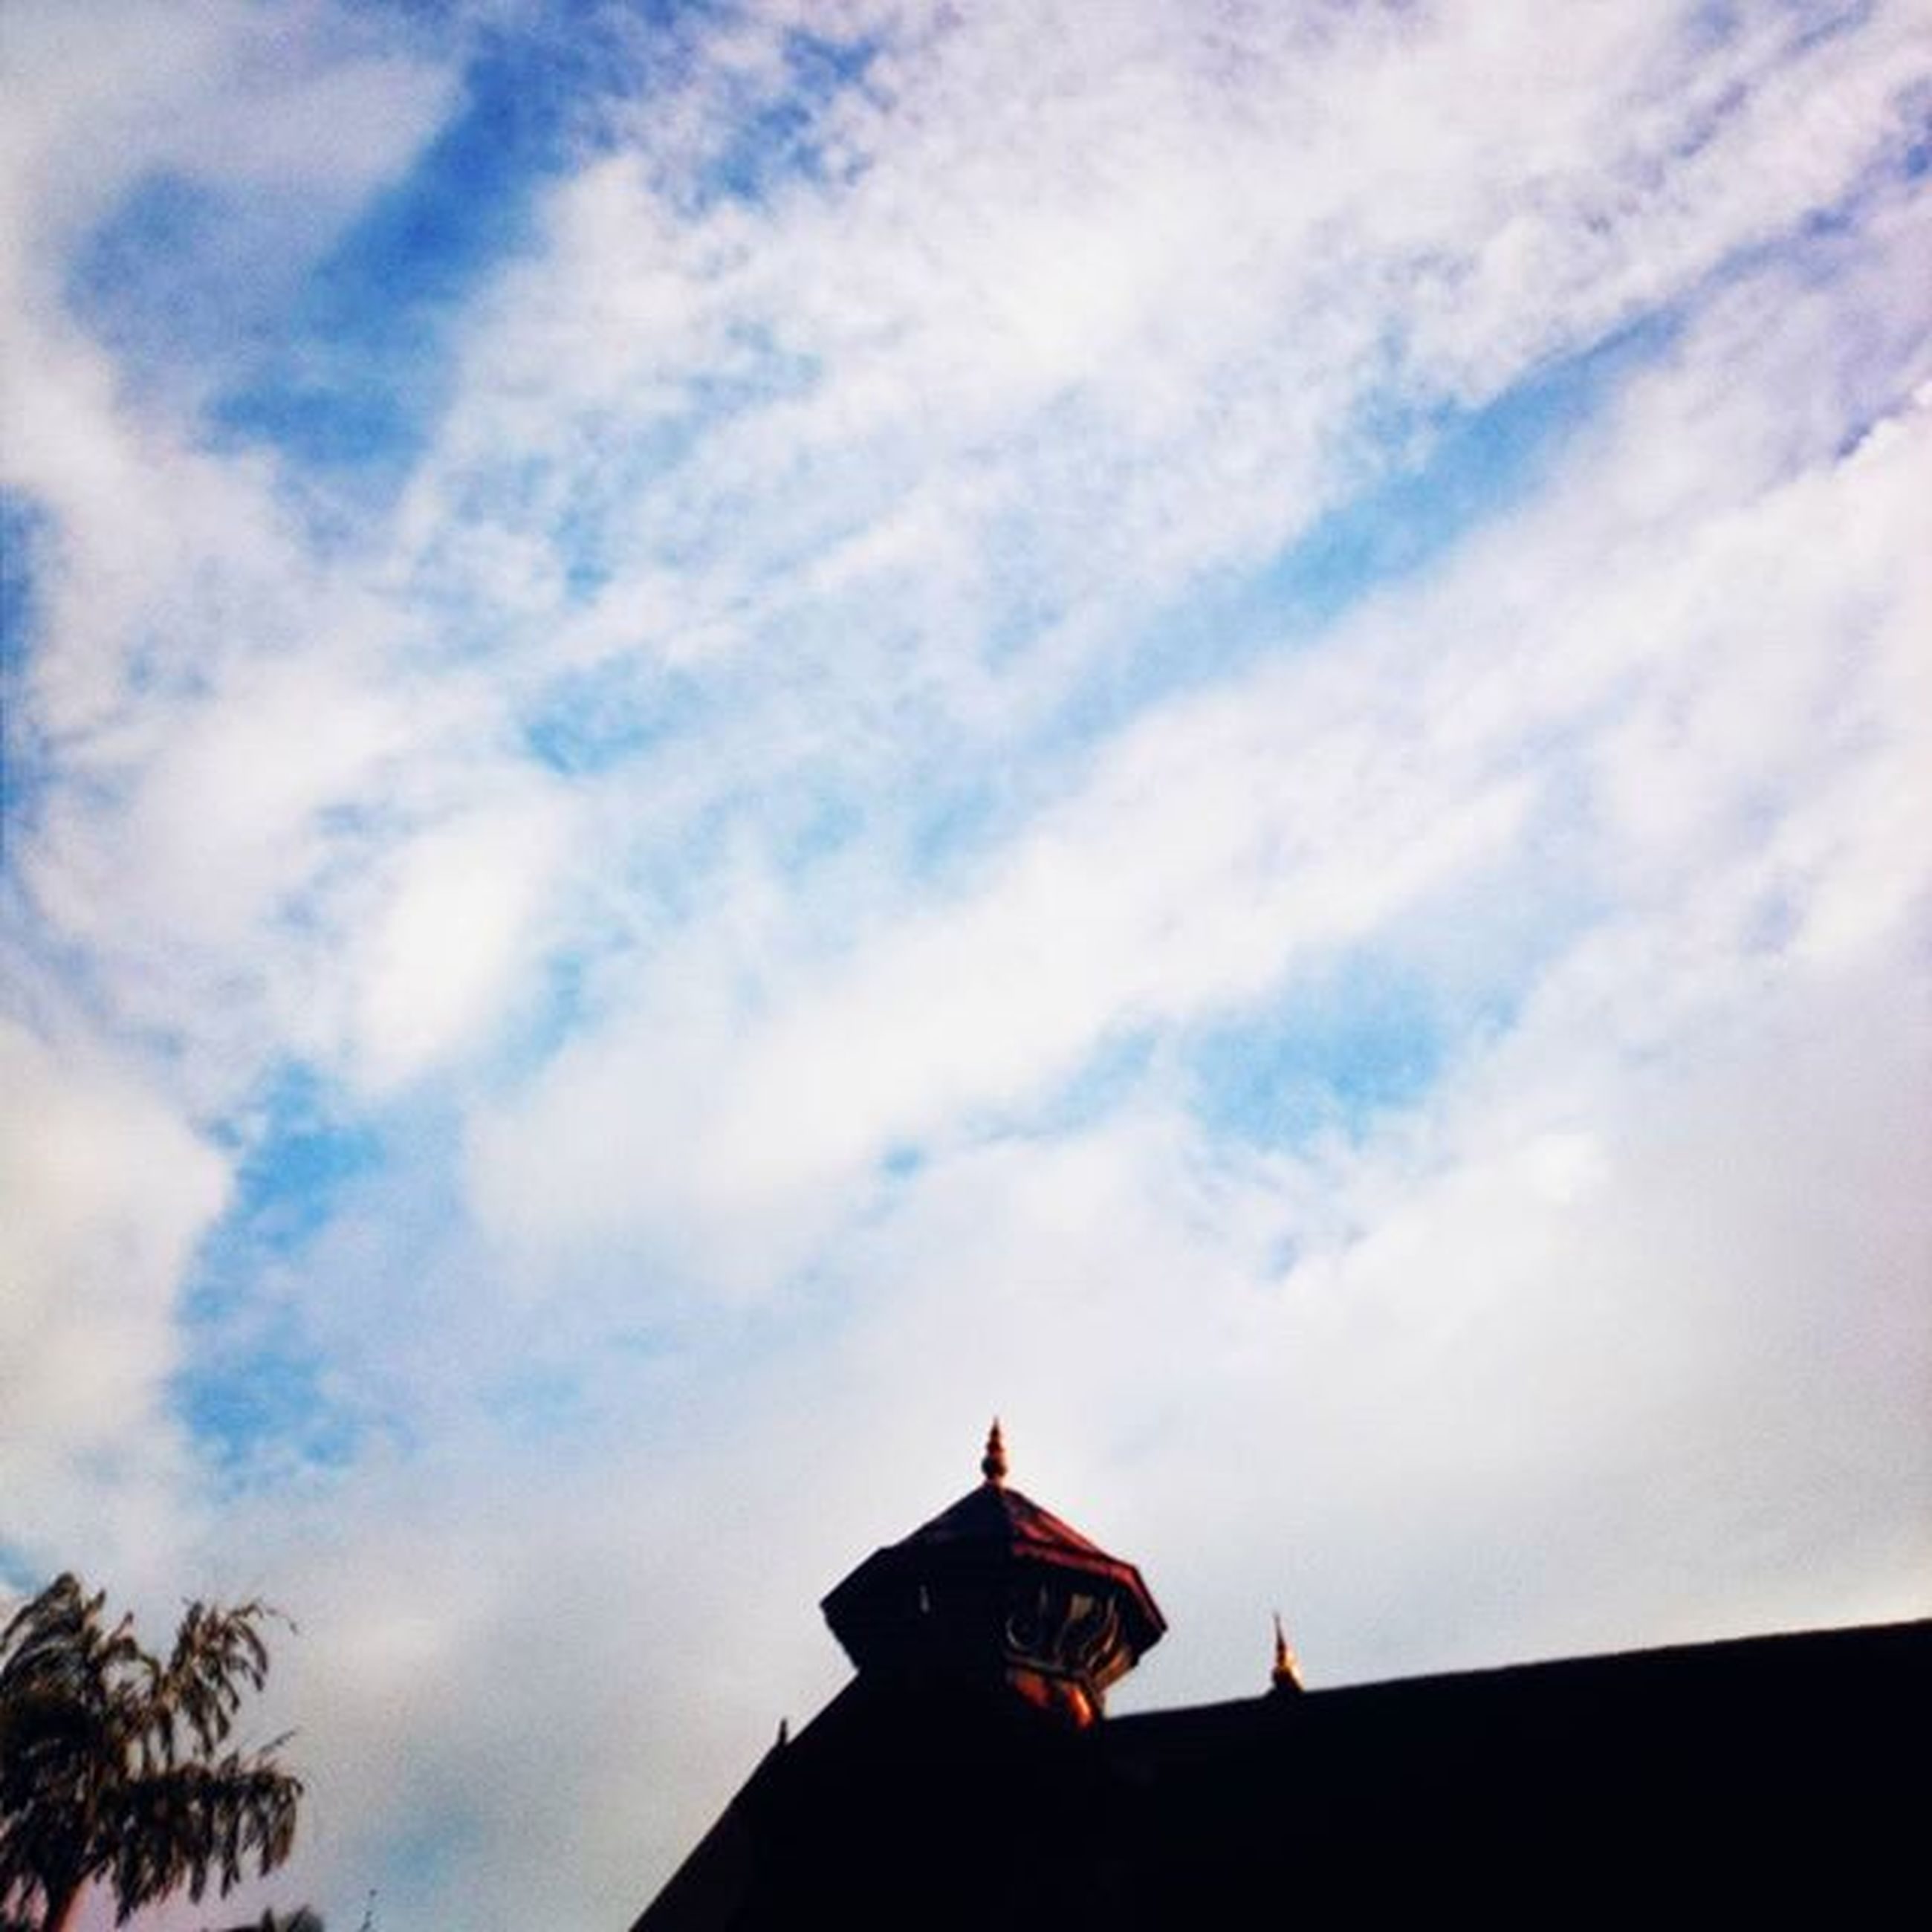 low angle view, sky, architecture, built structure, building exterior, cloud - sky, high section, cloudy, cloud, roof, outdoors, no people, weather, house, day, nature, place of worship, silhouette, religion, overcast